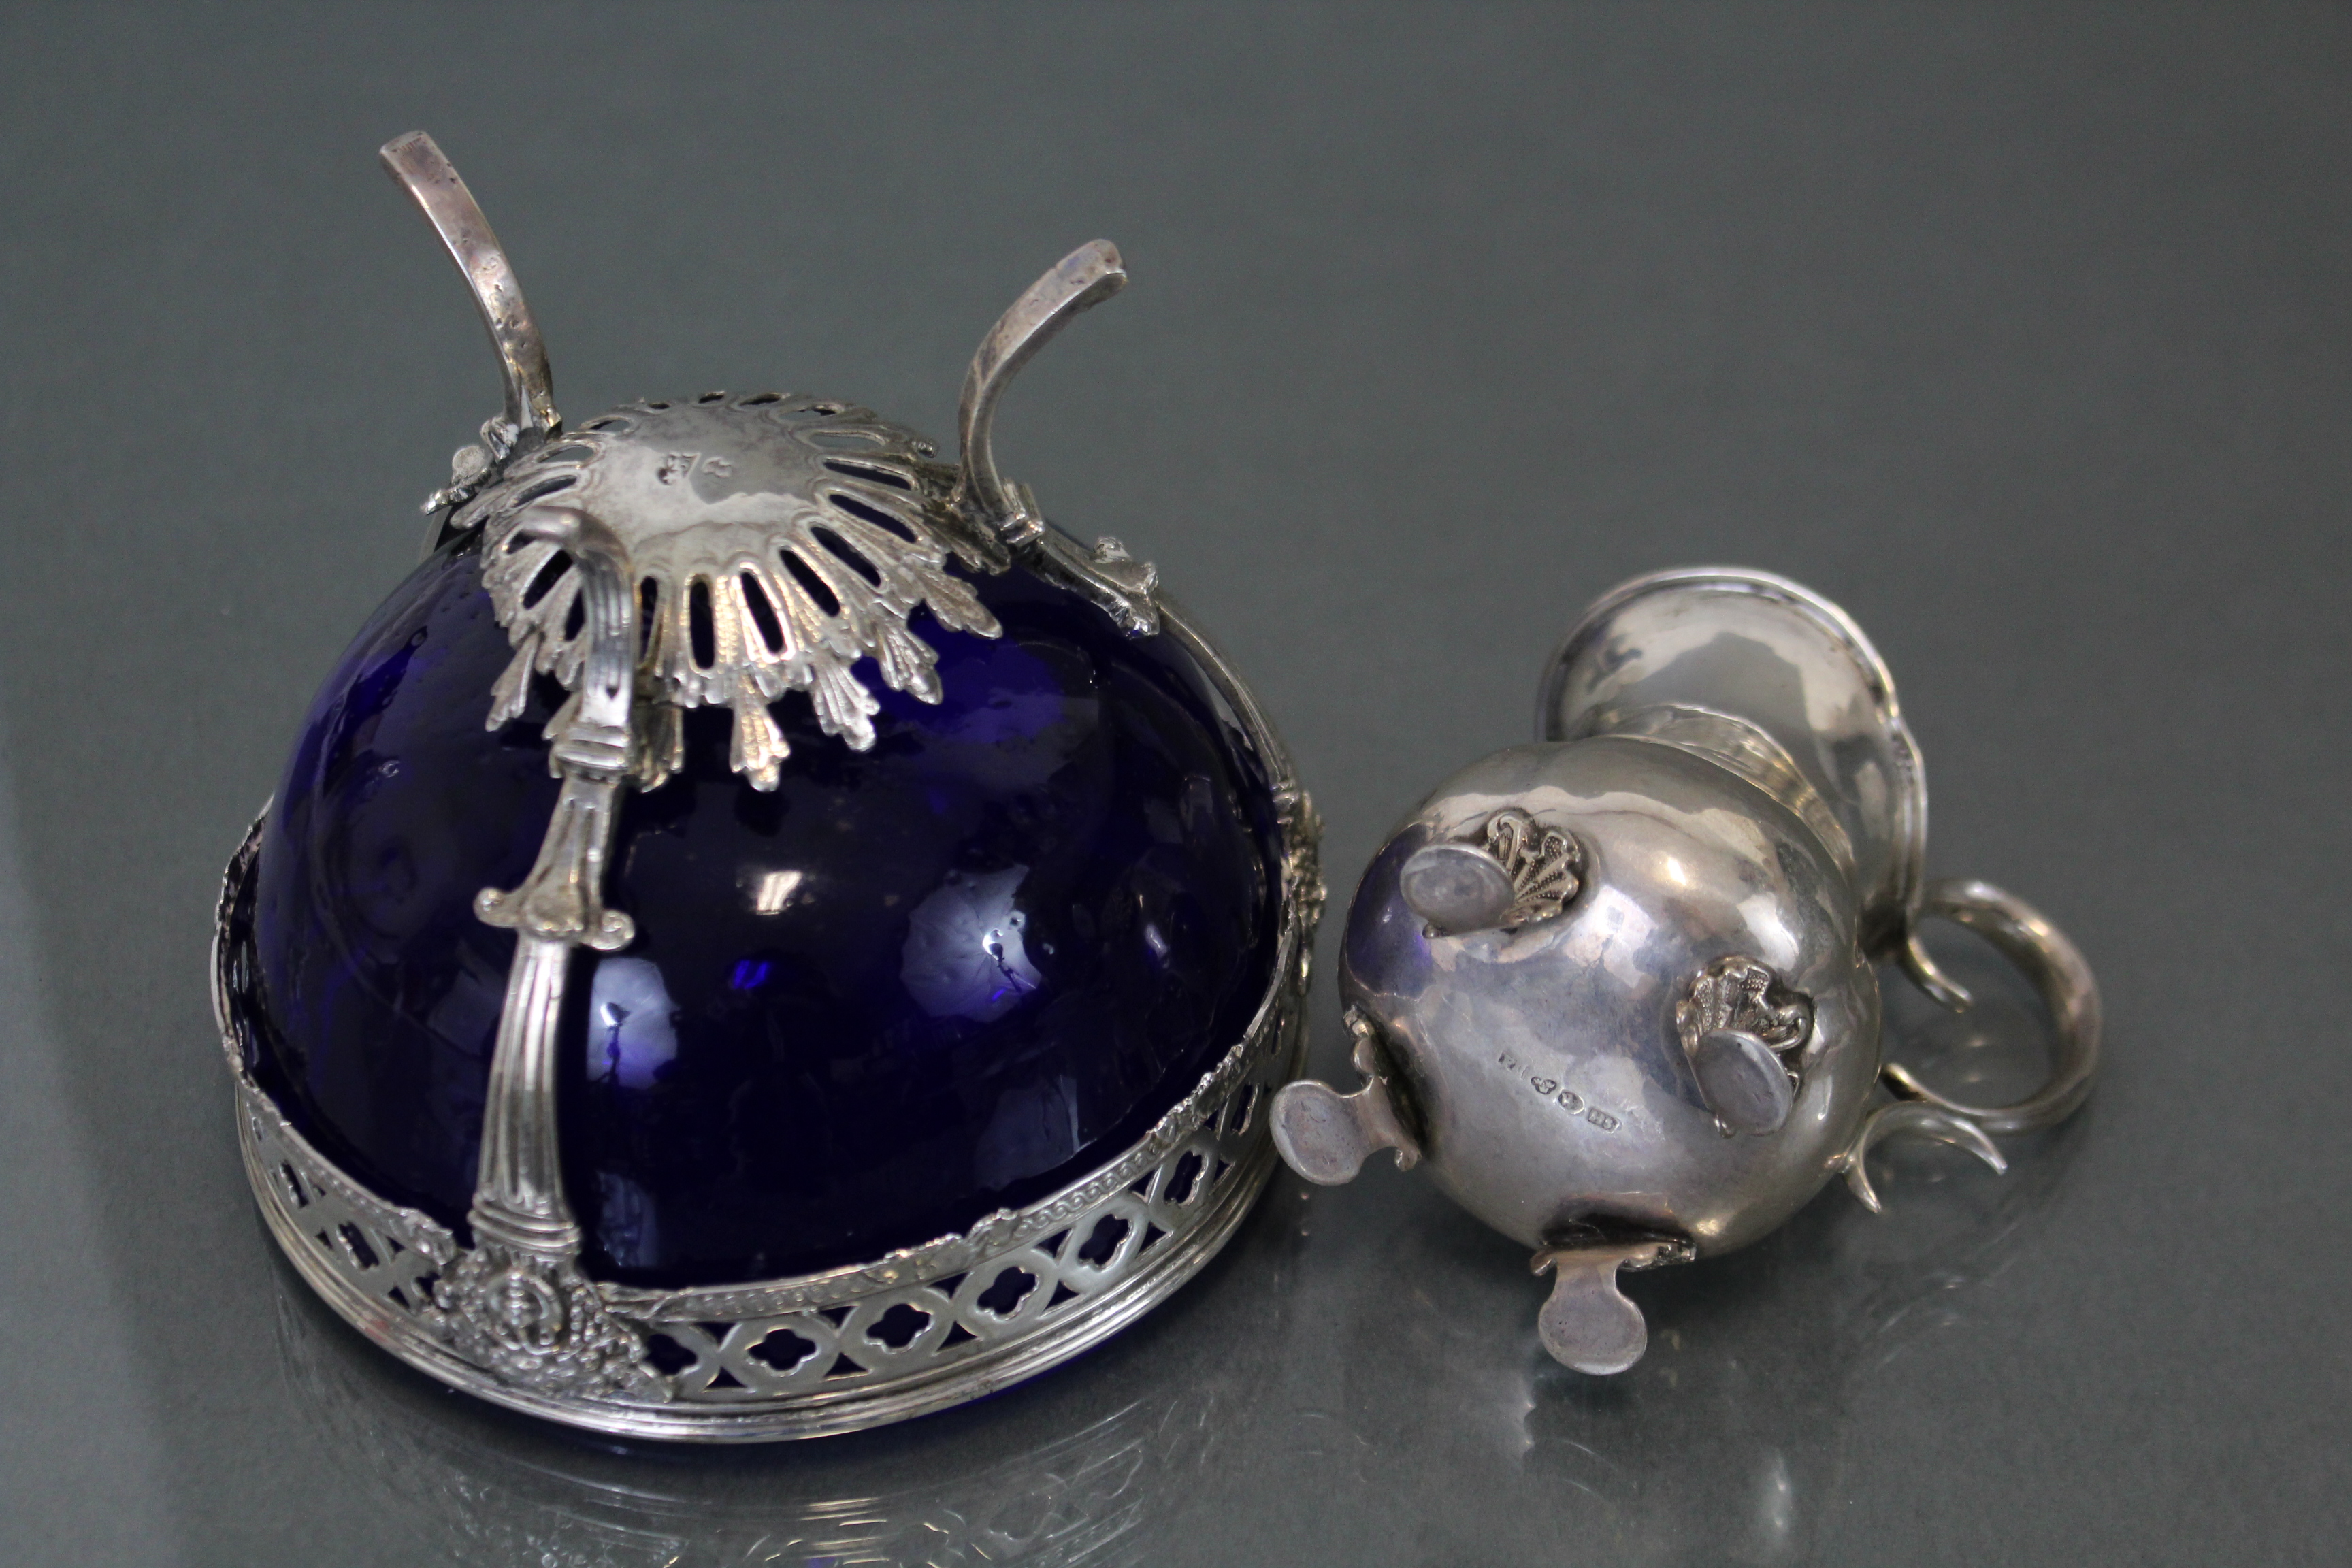 Lot 84 - A 19th century Swedish silver small jug of ovoid shape with flared rim, scroll handle & shell-shaped